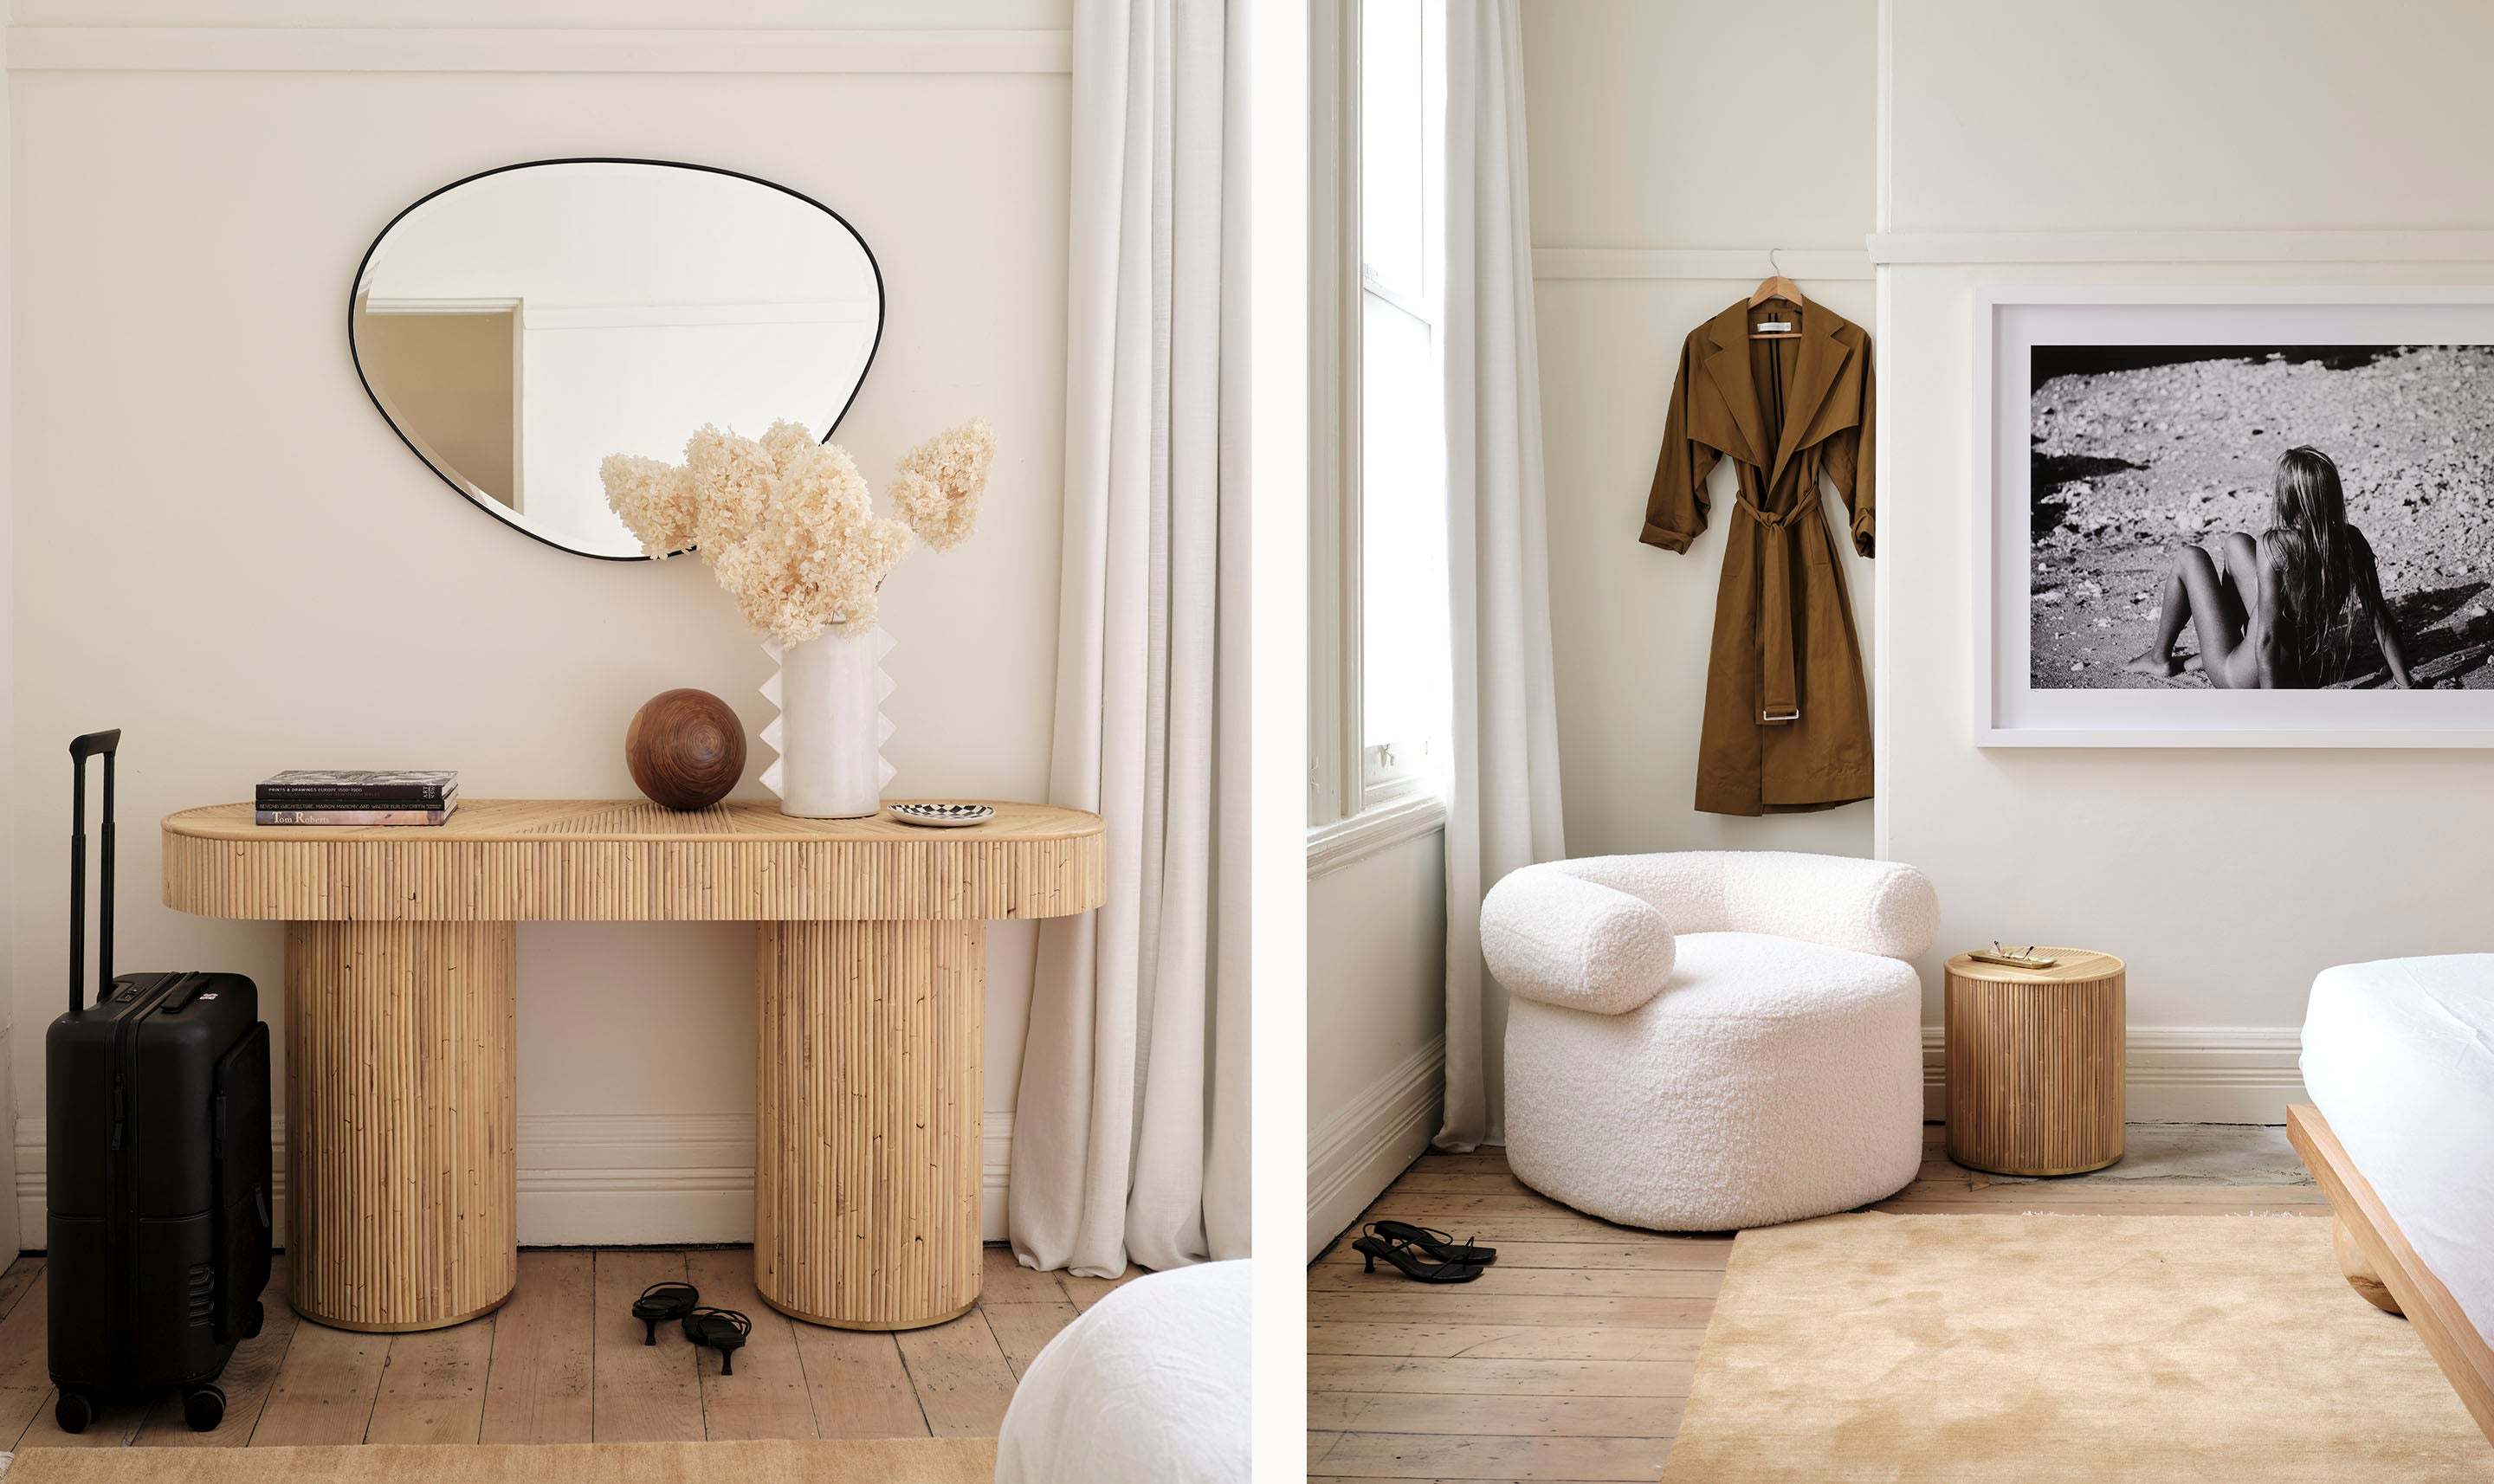 Sarah Ellison's Three Rooms apartment, featuring our Pebble Mirror, the Huggy Armchair, and the Halston Console